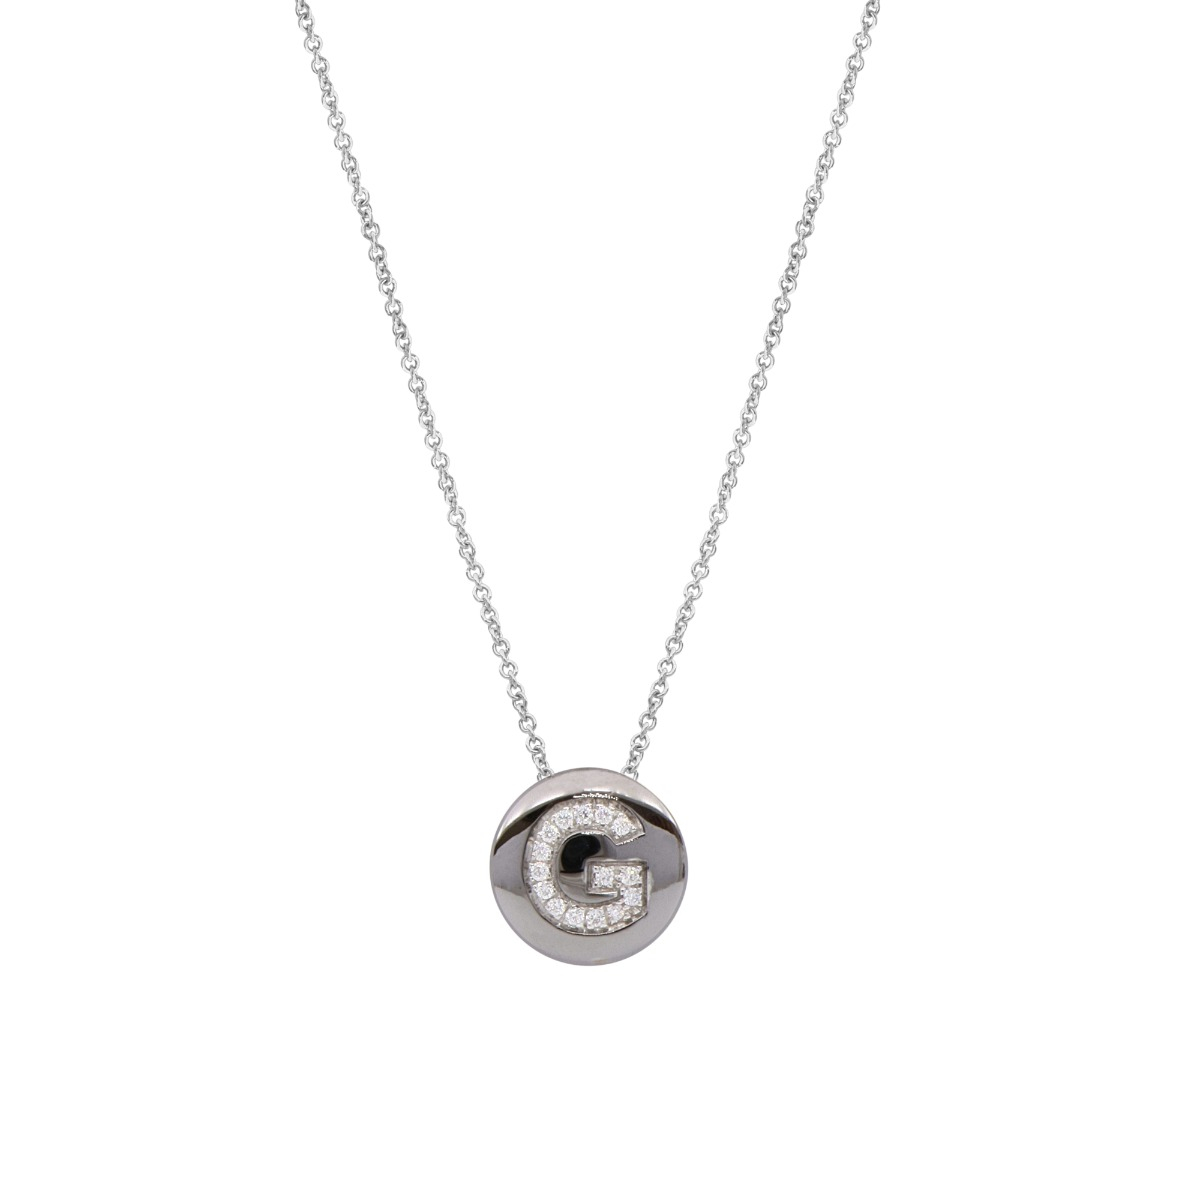 Glossy Round Disc Necklace with Diamond Letter in 18 Kt White Gold